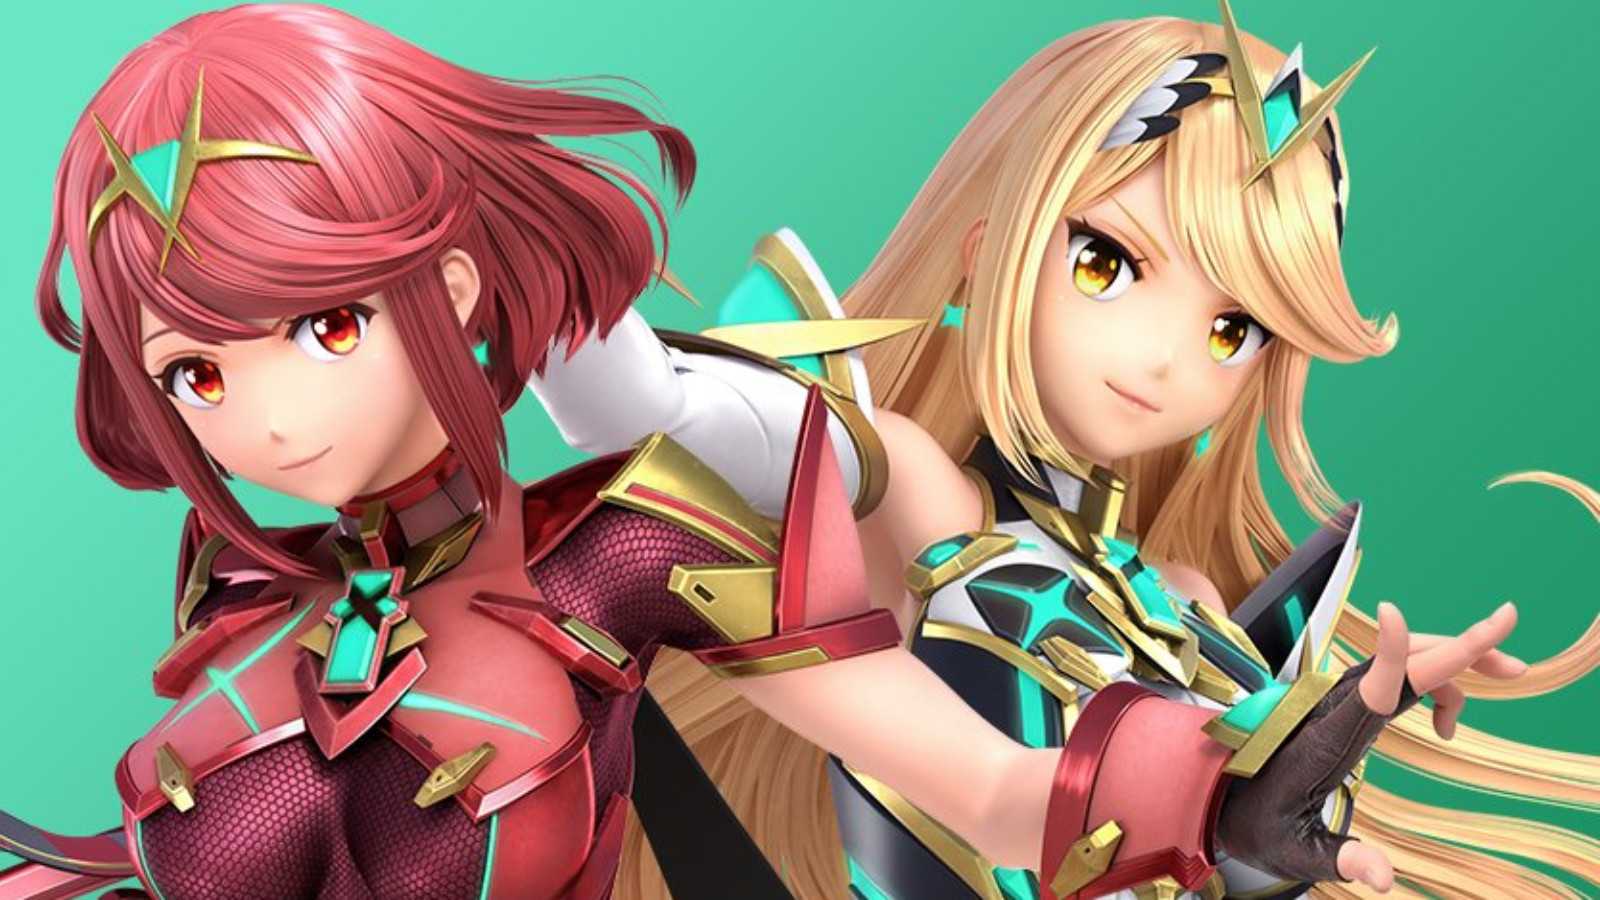 Pyra and Mythra in Smash Ultimate